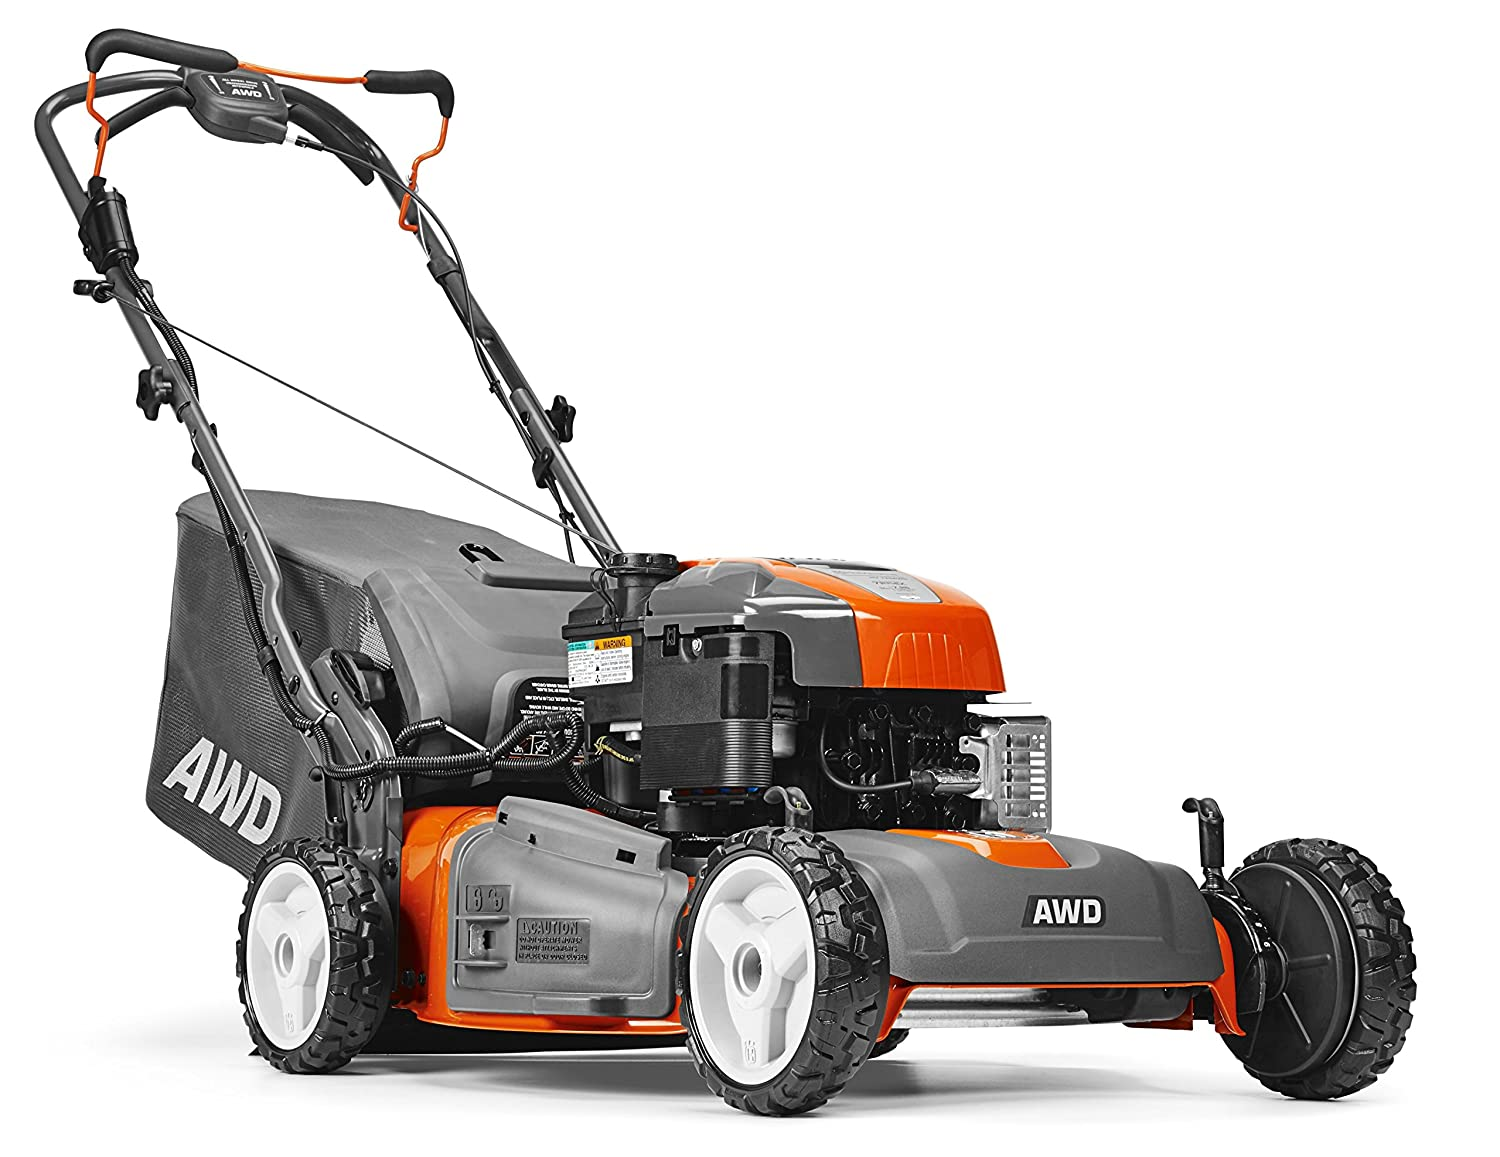 Husqvarna 961430115 HU725AWDE Briggs 725ex 190cc 3-in-1 All Wheel Drive 4X4 Mower in 22-Inch Deck